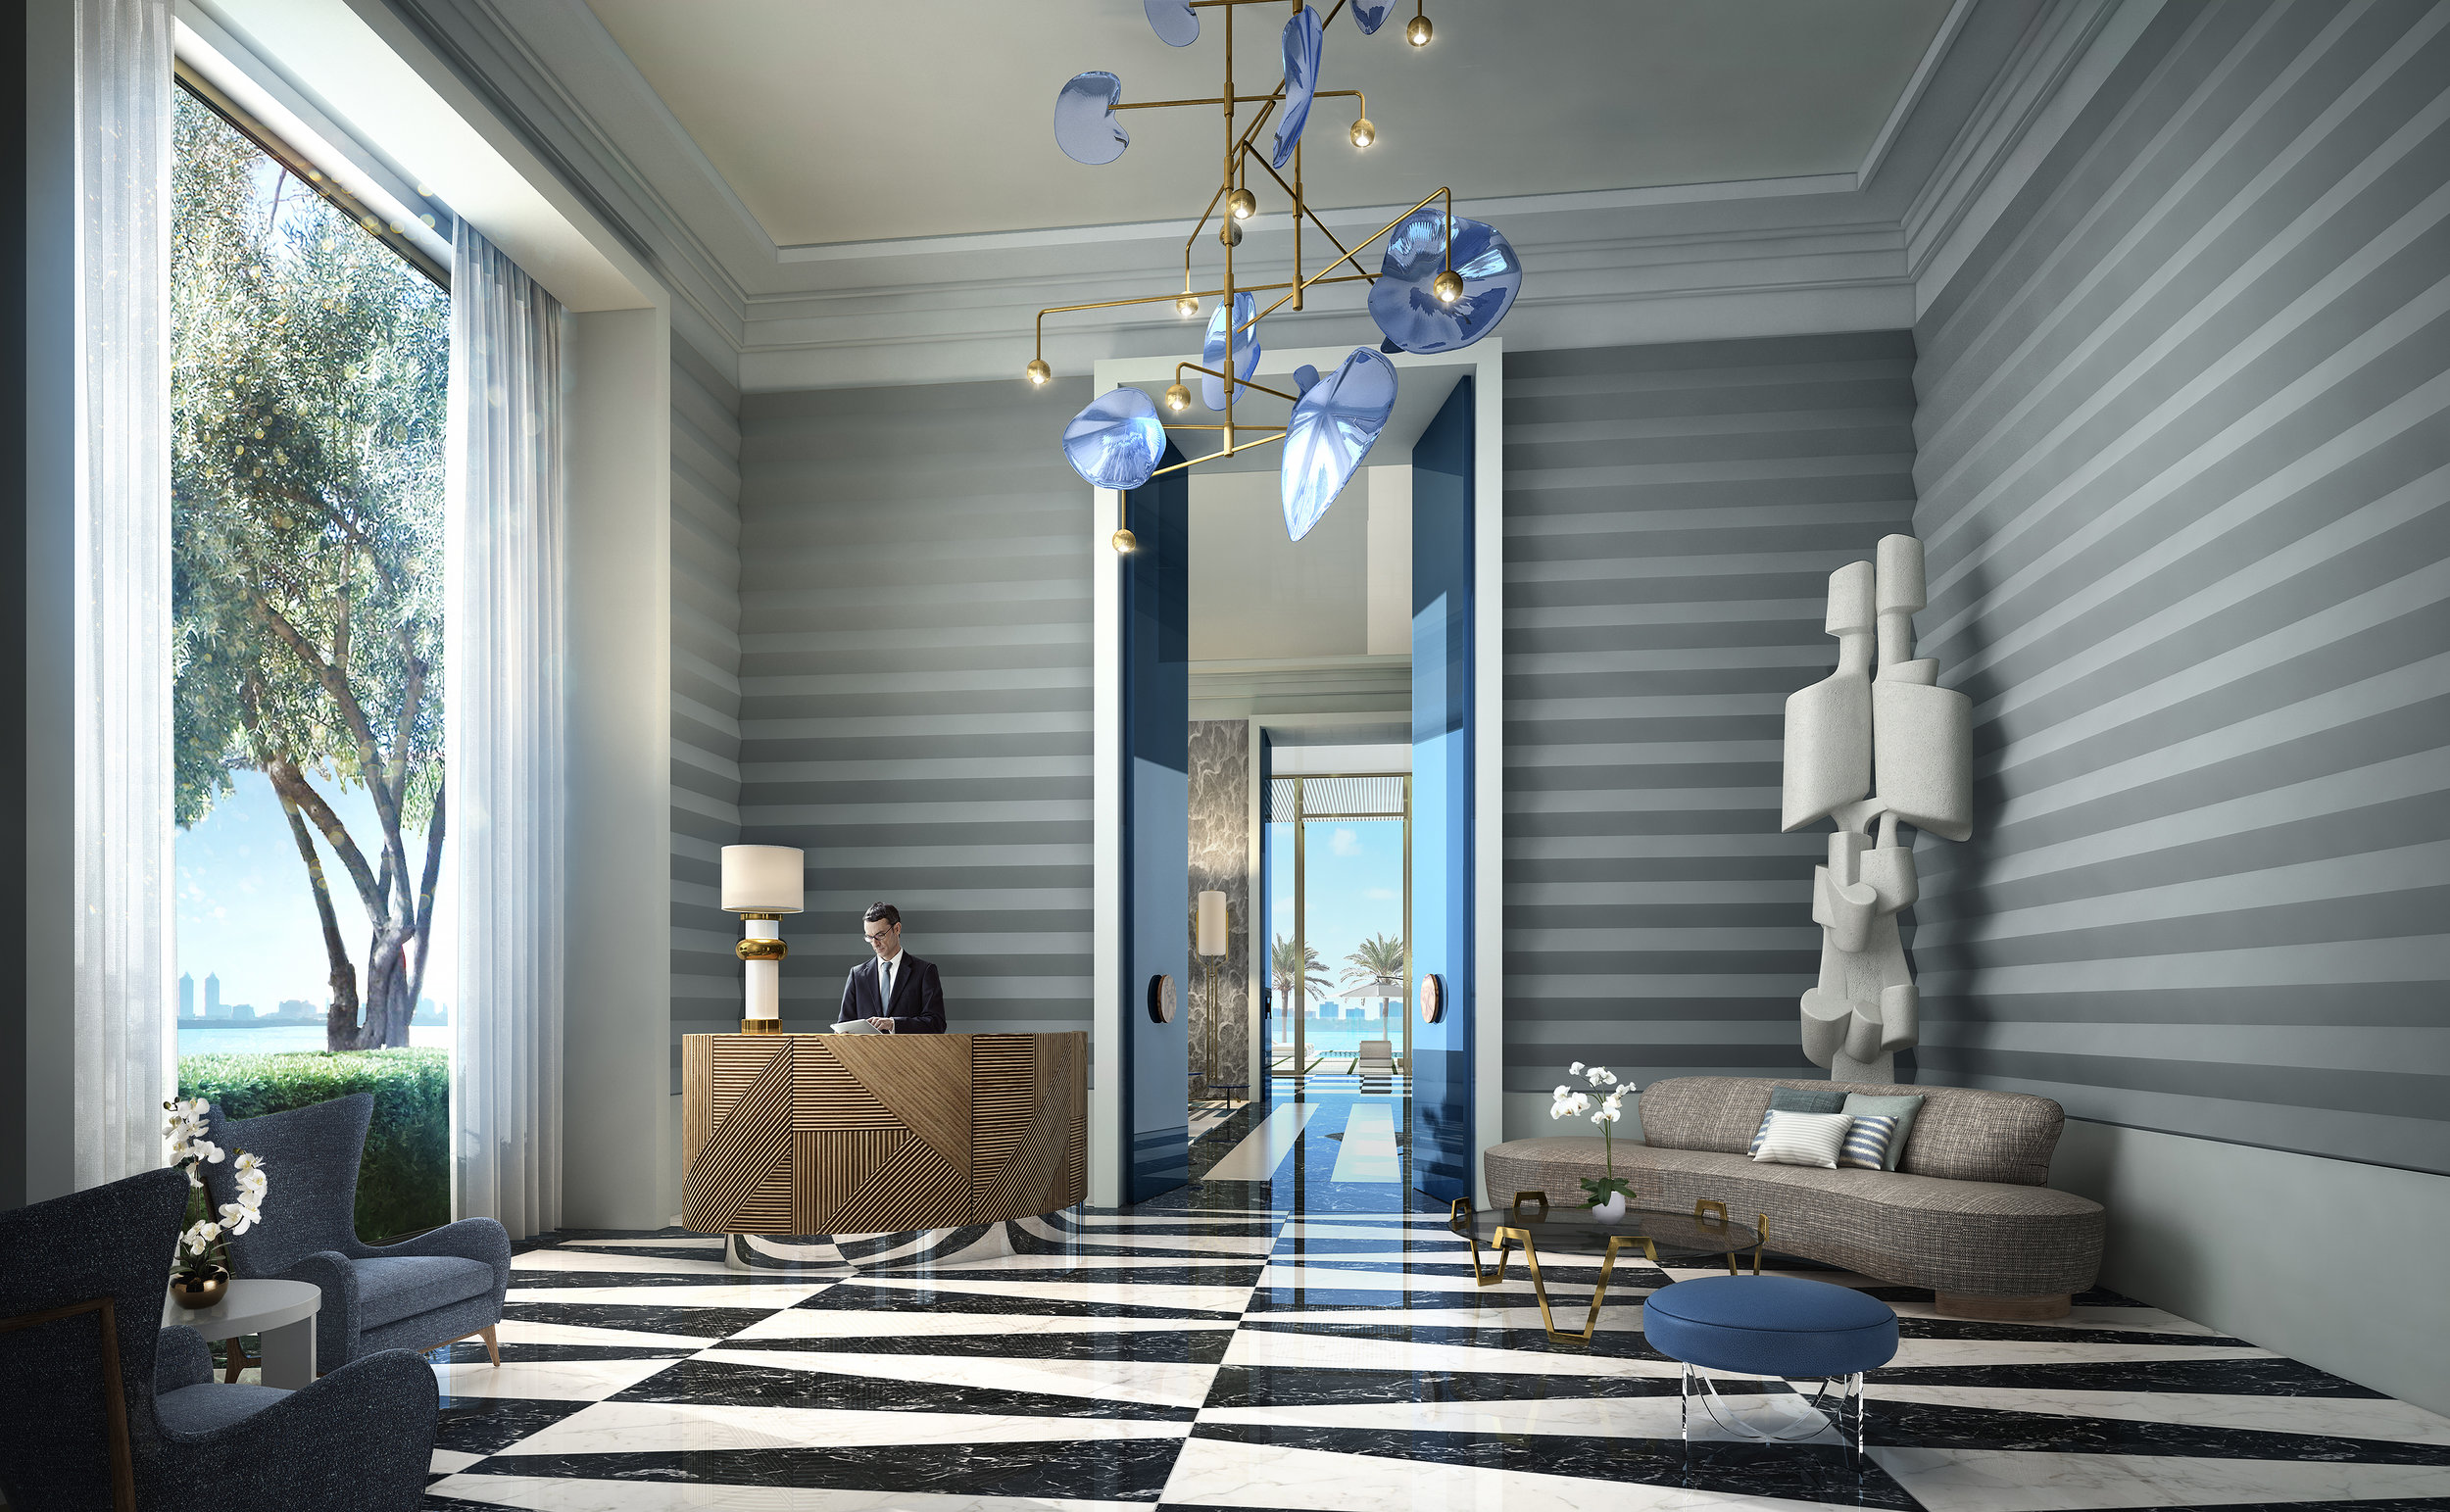 Grand Marble Lobby with 13-Foot Ceilings